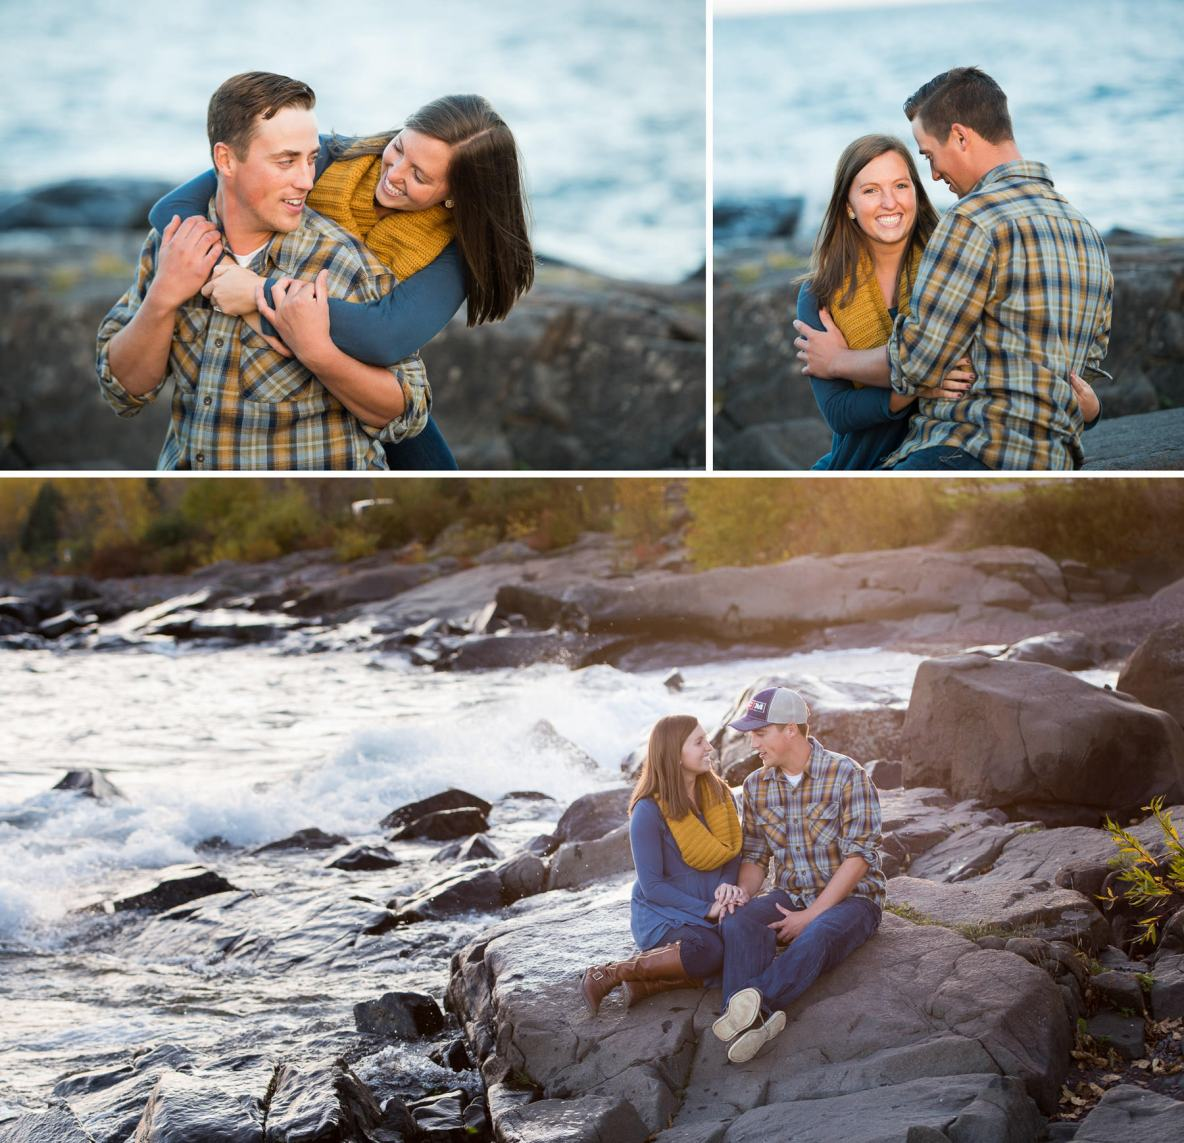 Engagement couple photos with running water in the background.